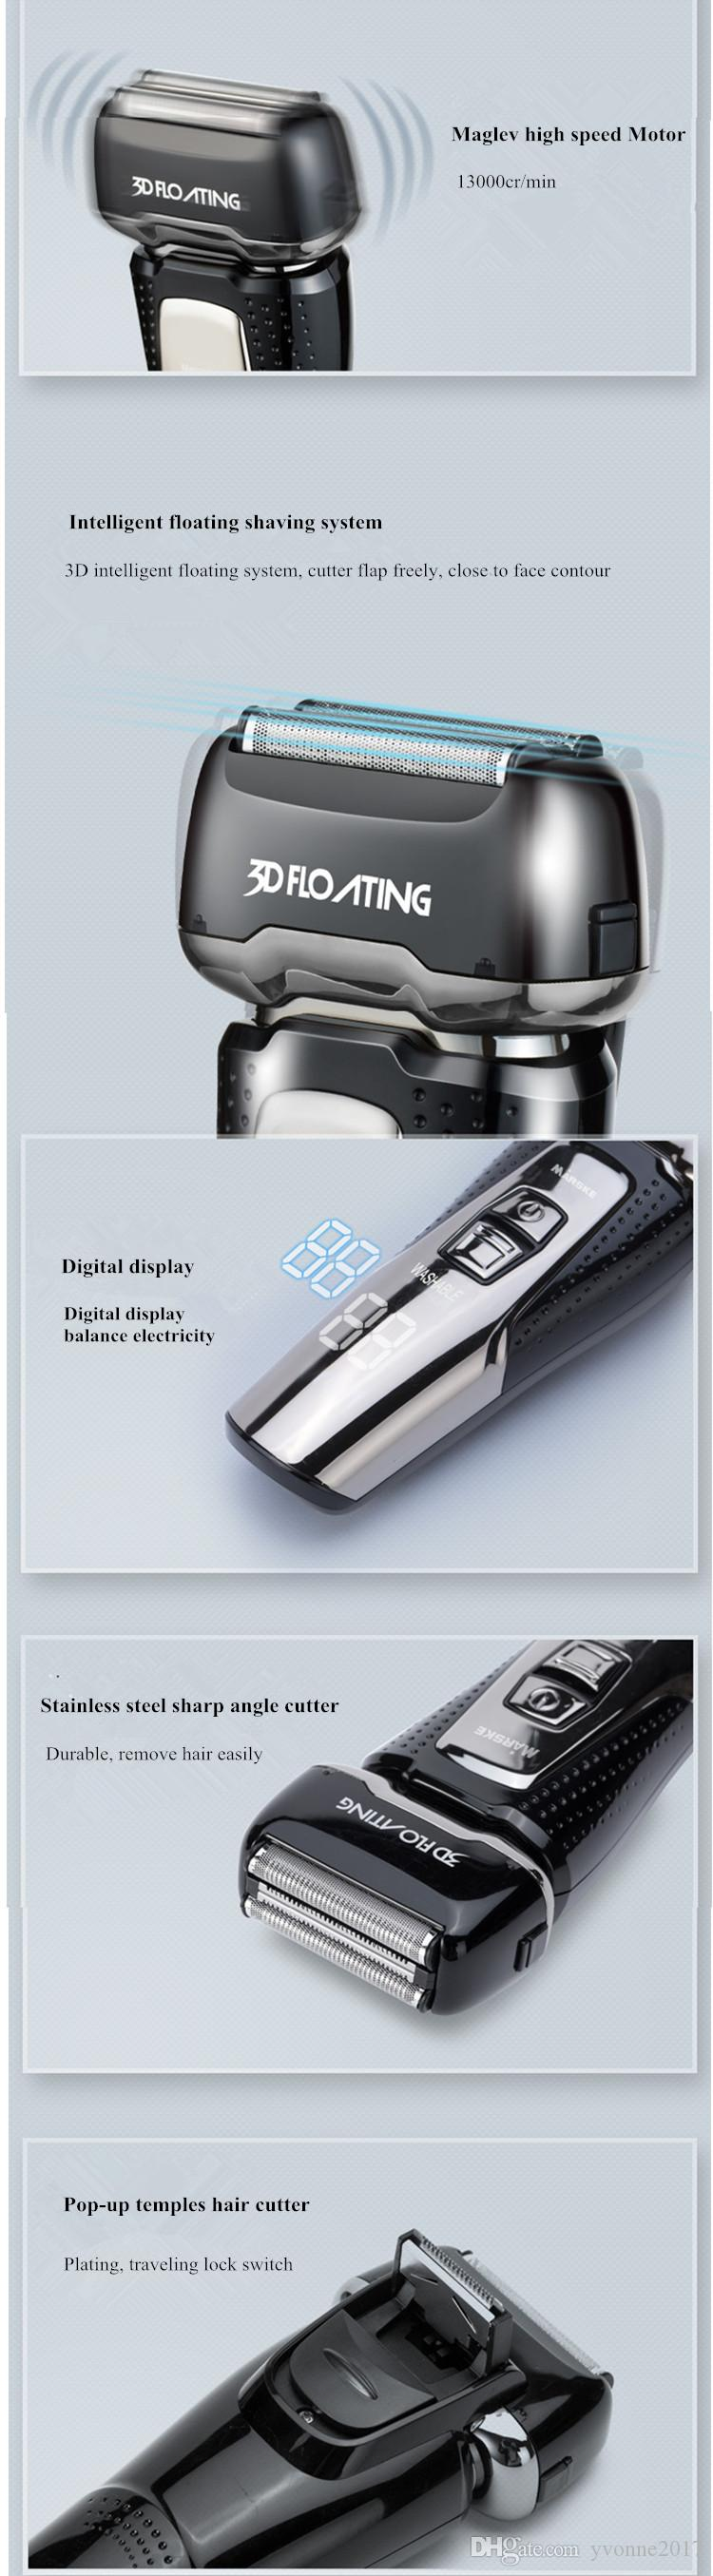 Rechargeable EU plug electric Intelligent Maglev stainless steel men shaver temples hair cutter whole machine washable